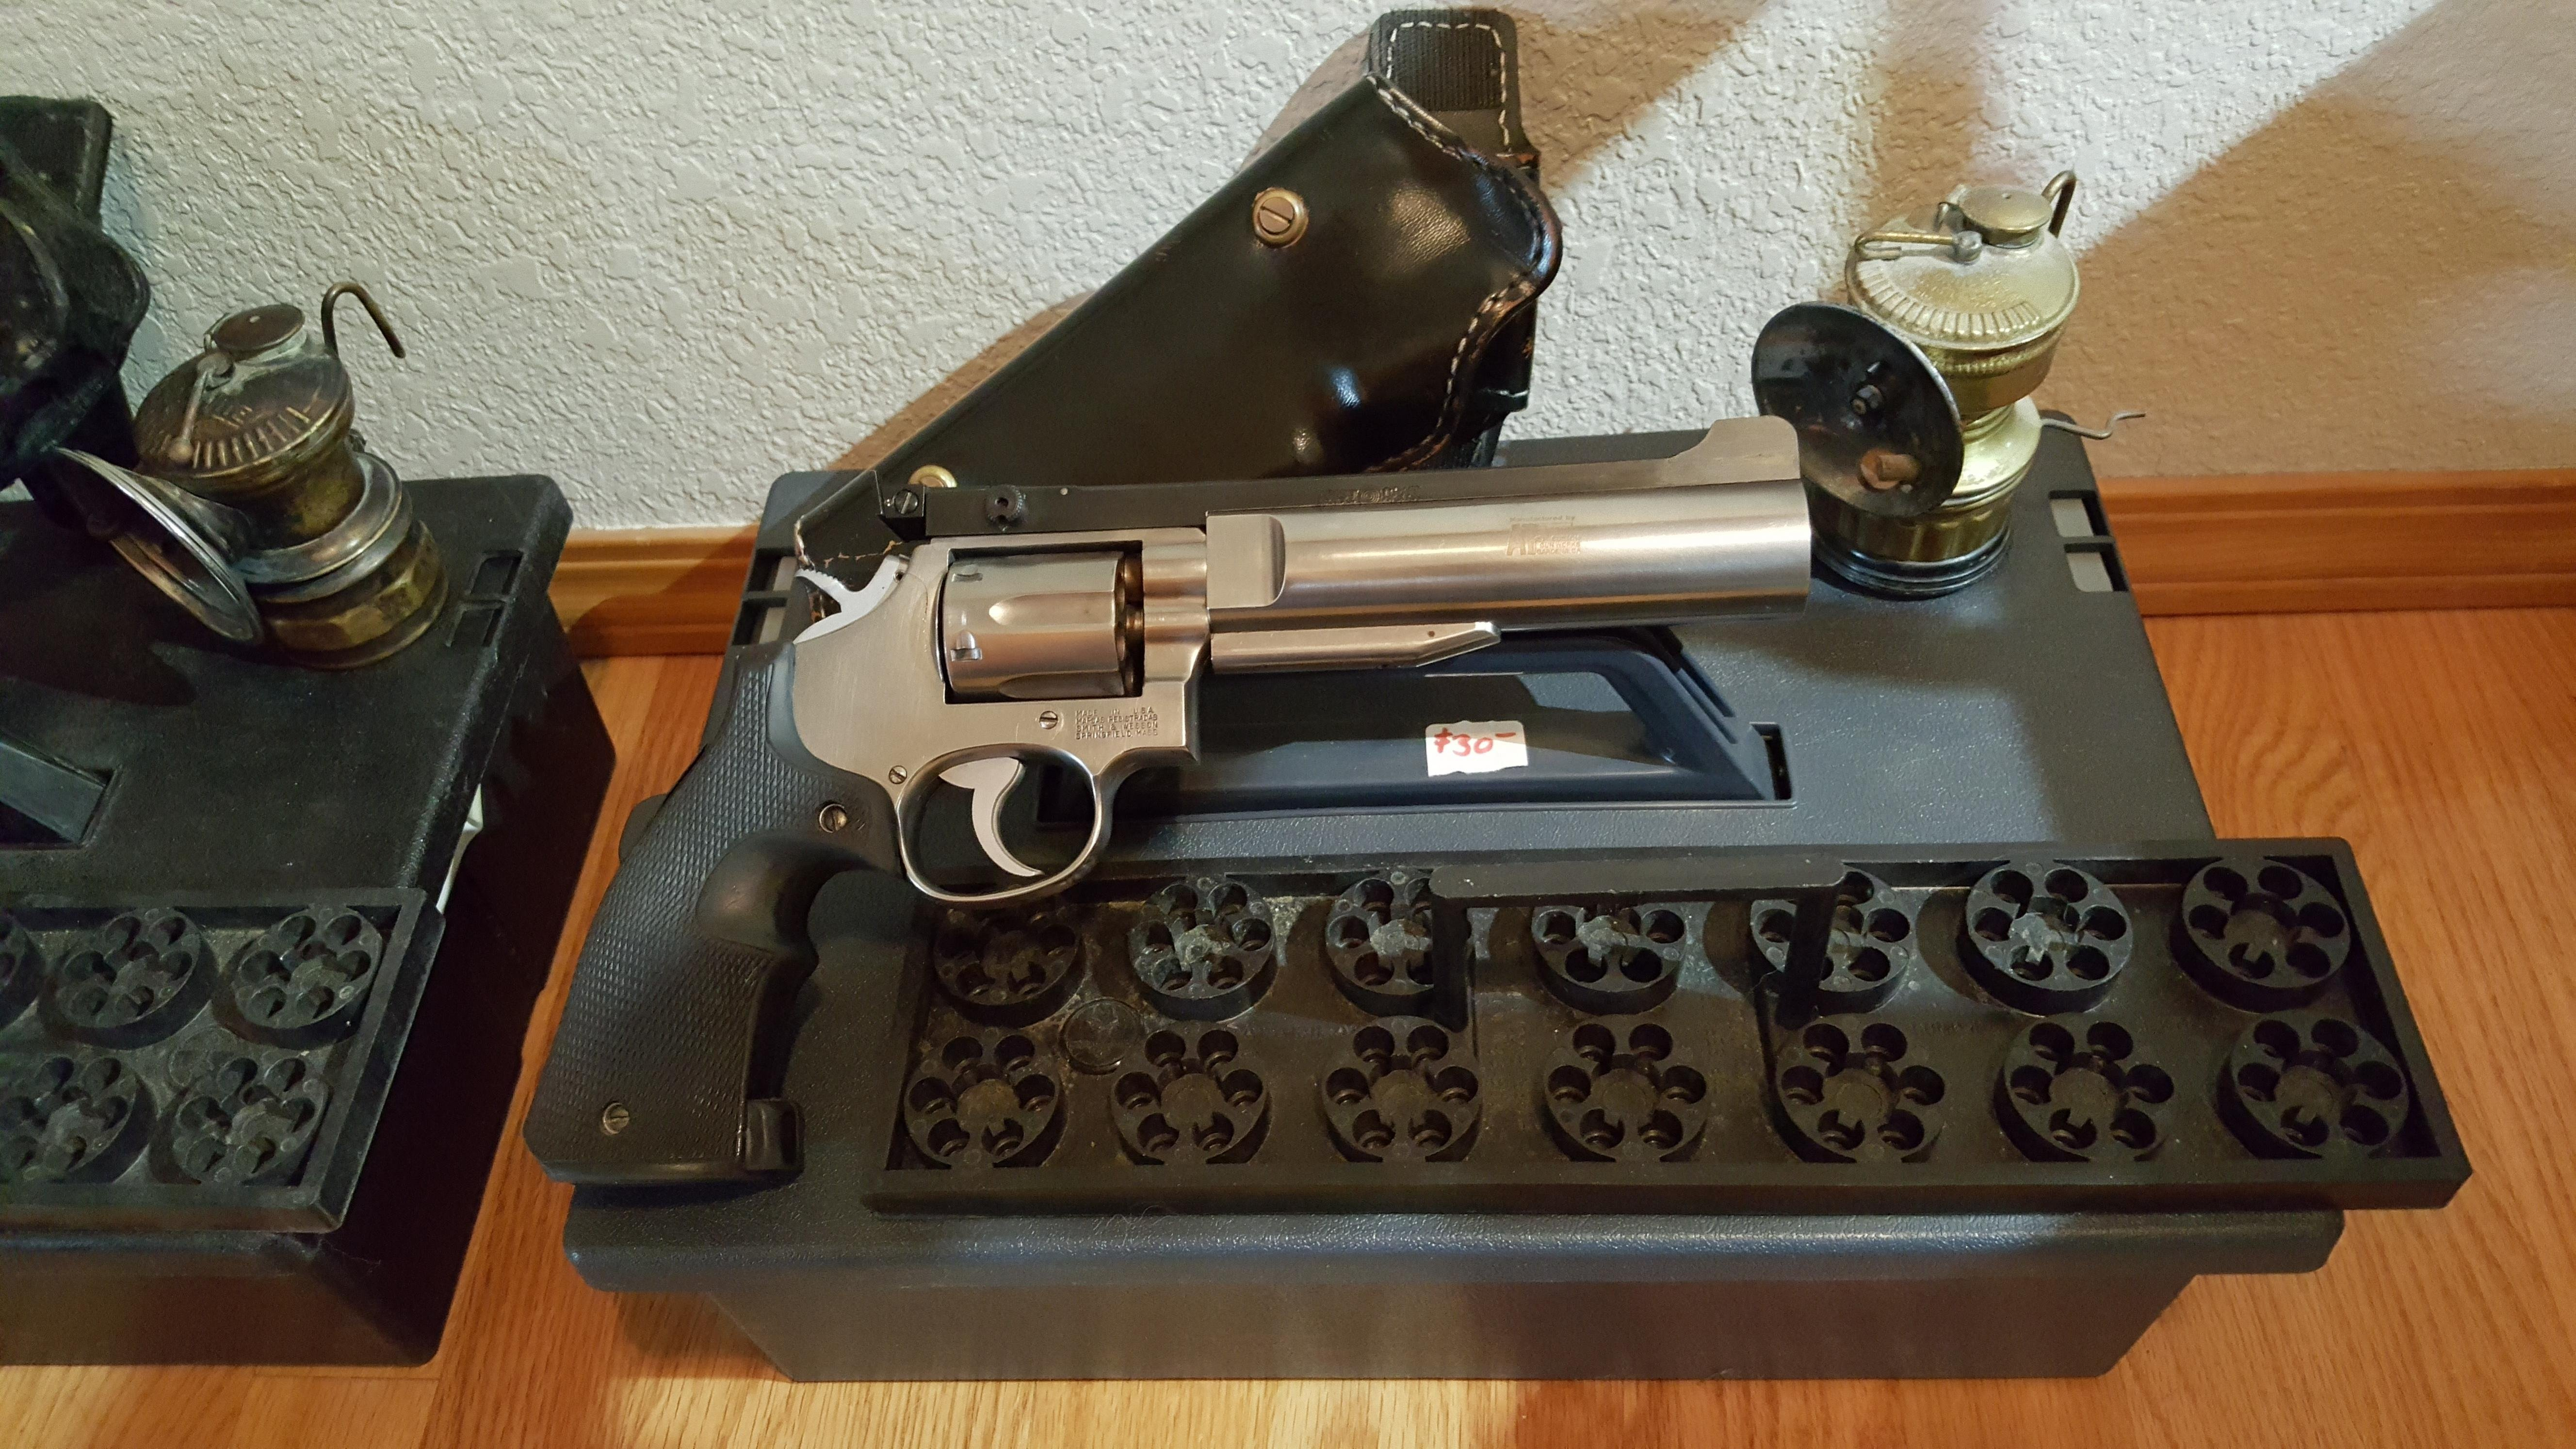 Click image for larger version  Name:20180718_111605 Tanaka PPC Open Revolver.jpg Views:37 Size:1.63 MB ID:532834